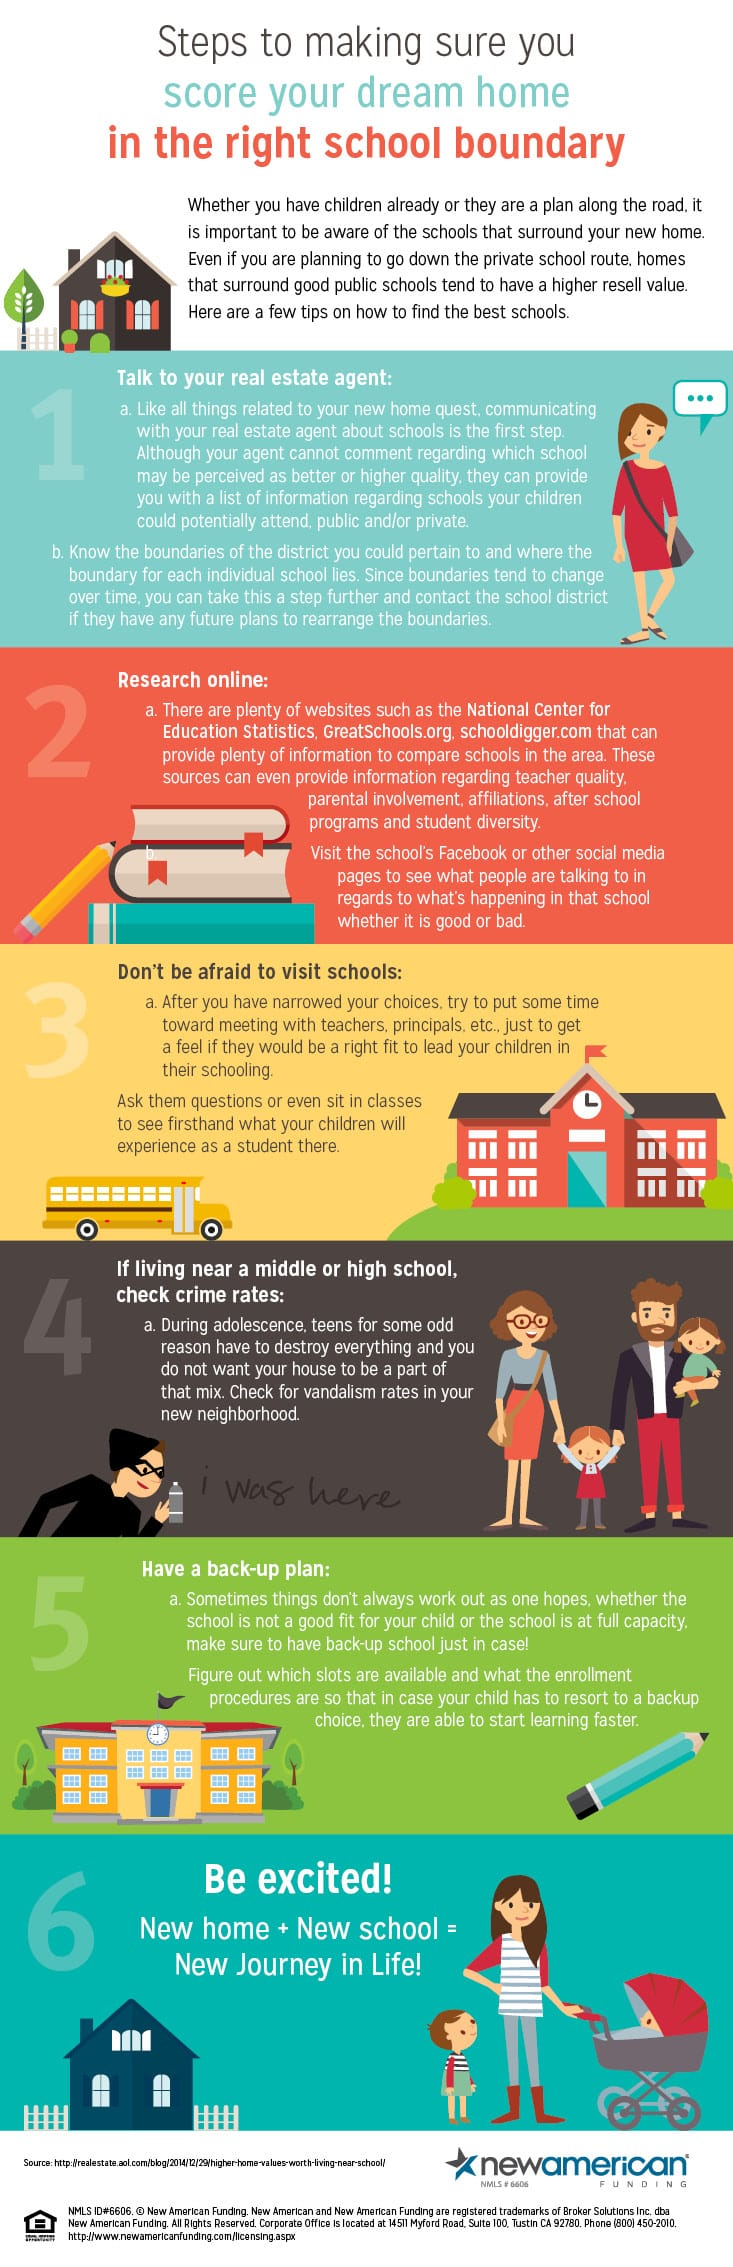 Steps to Making Sure You Score Your Dream in the Right School Boundary